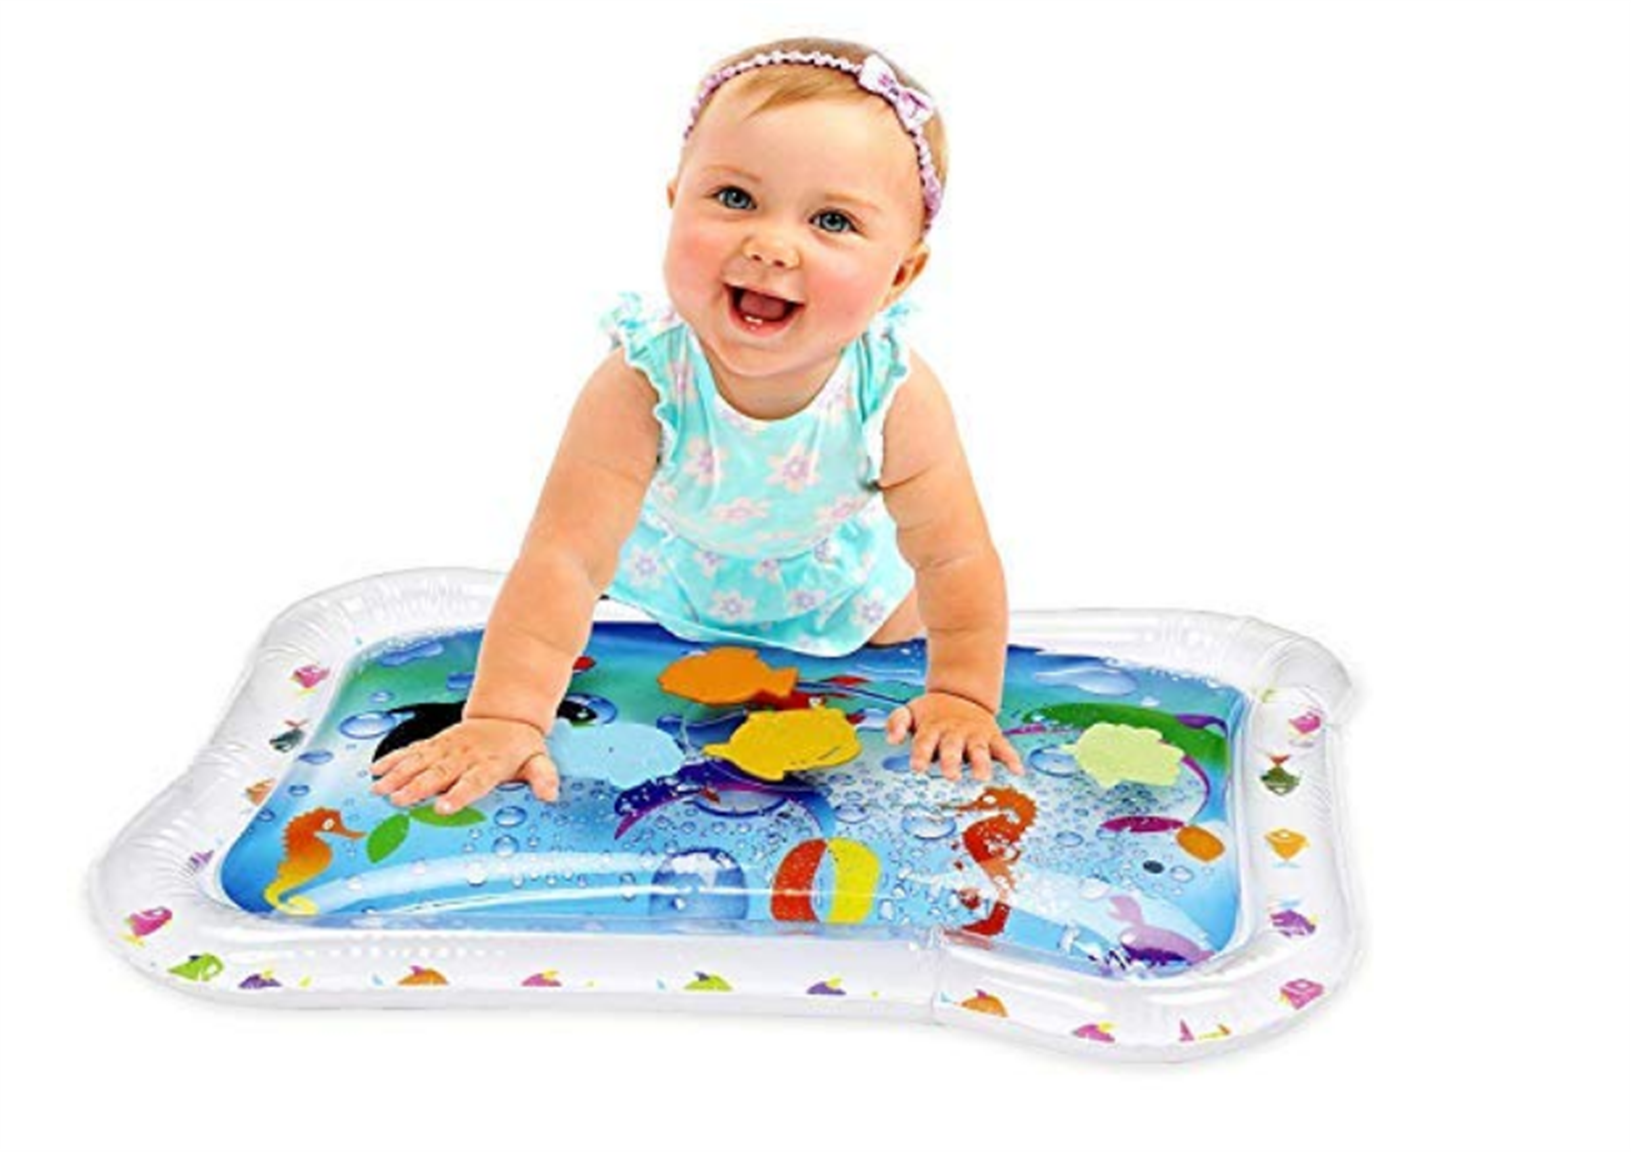 Amazon – Hoovy Tummy Time Water Baby Play Mat Only $6.99, Reg $15.99!